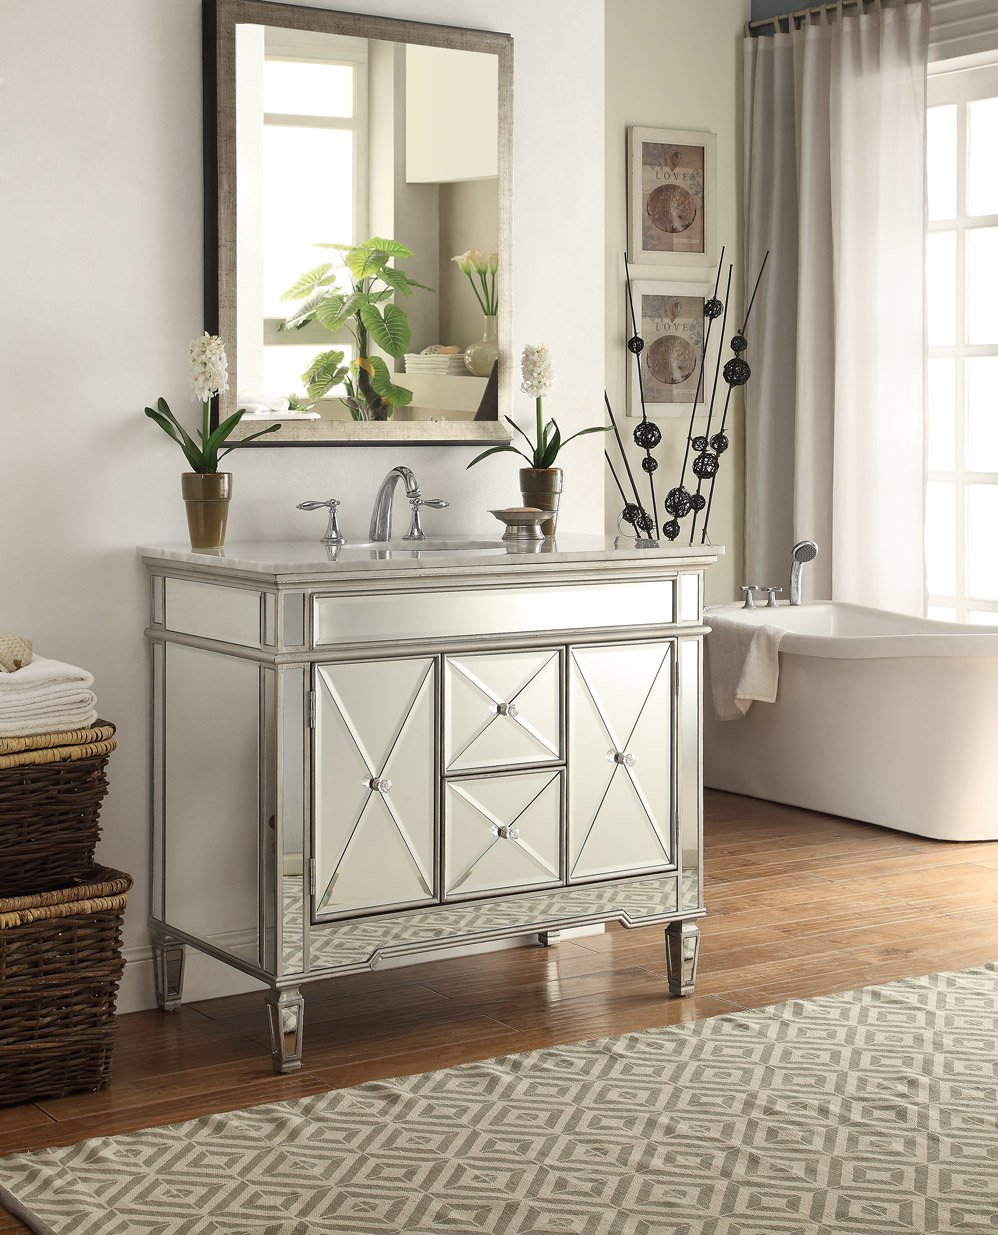 40  All mirrored reflection Adelia Bathroom sink vanity Model DH 13Q322      Amazon com40  All mirrored reflection Adelia Bathroom sink vanity Model DH  . Mirrored Bathroom Vanity With Sink. Home Design Ideas